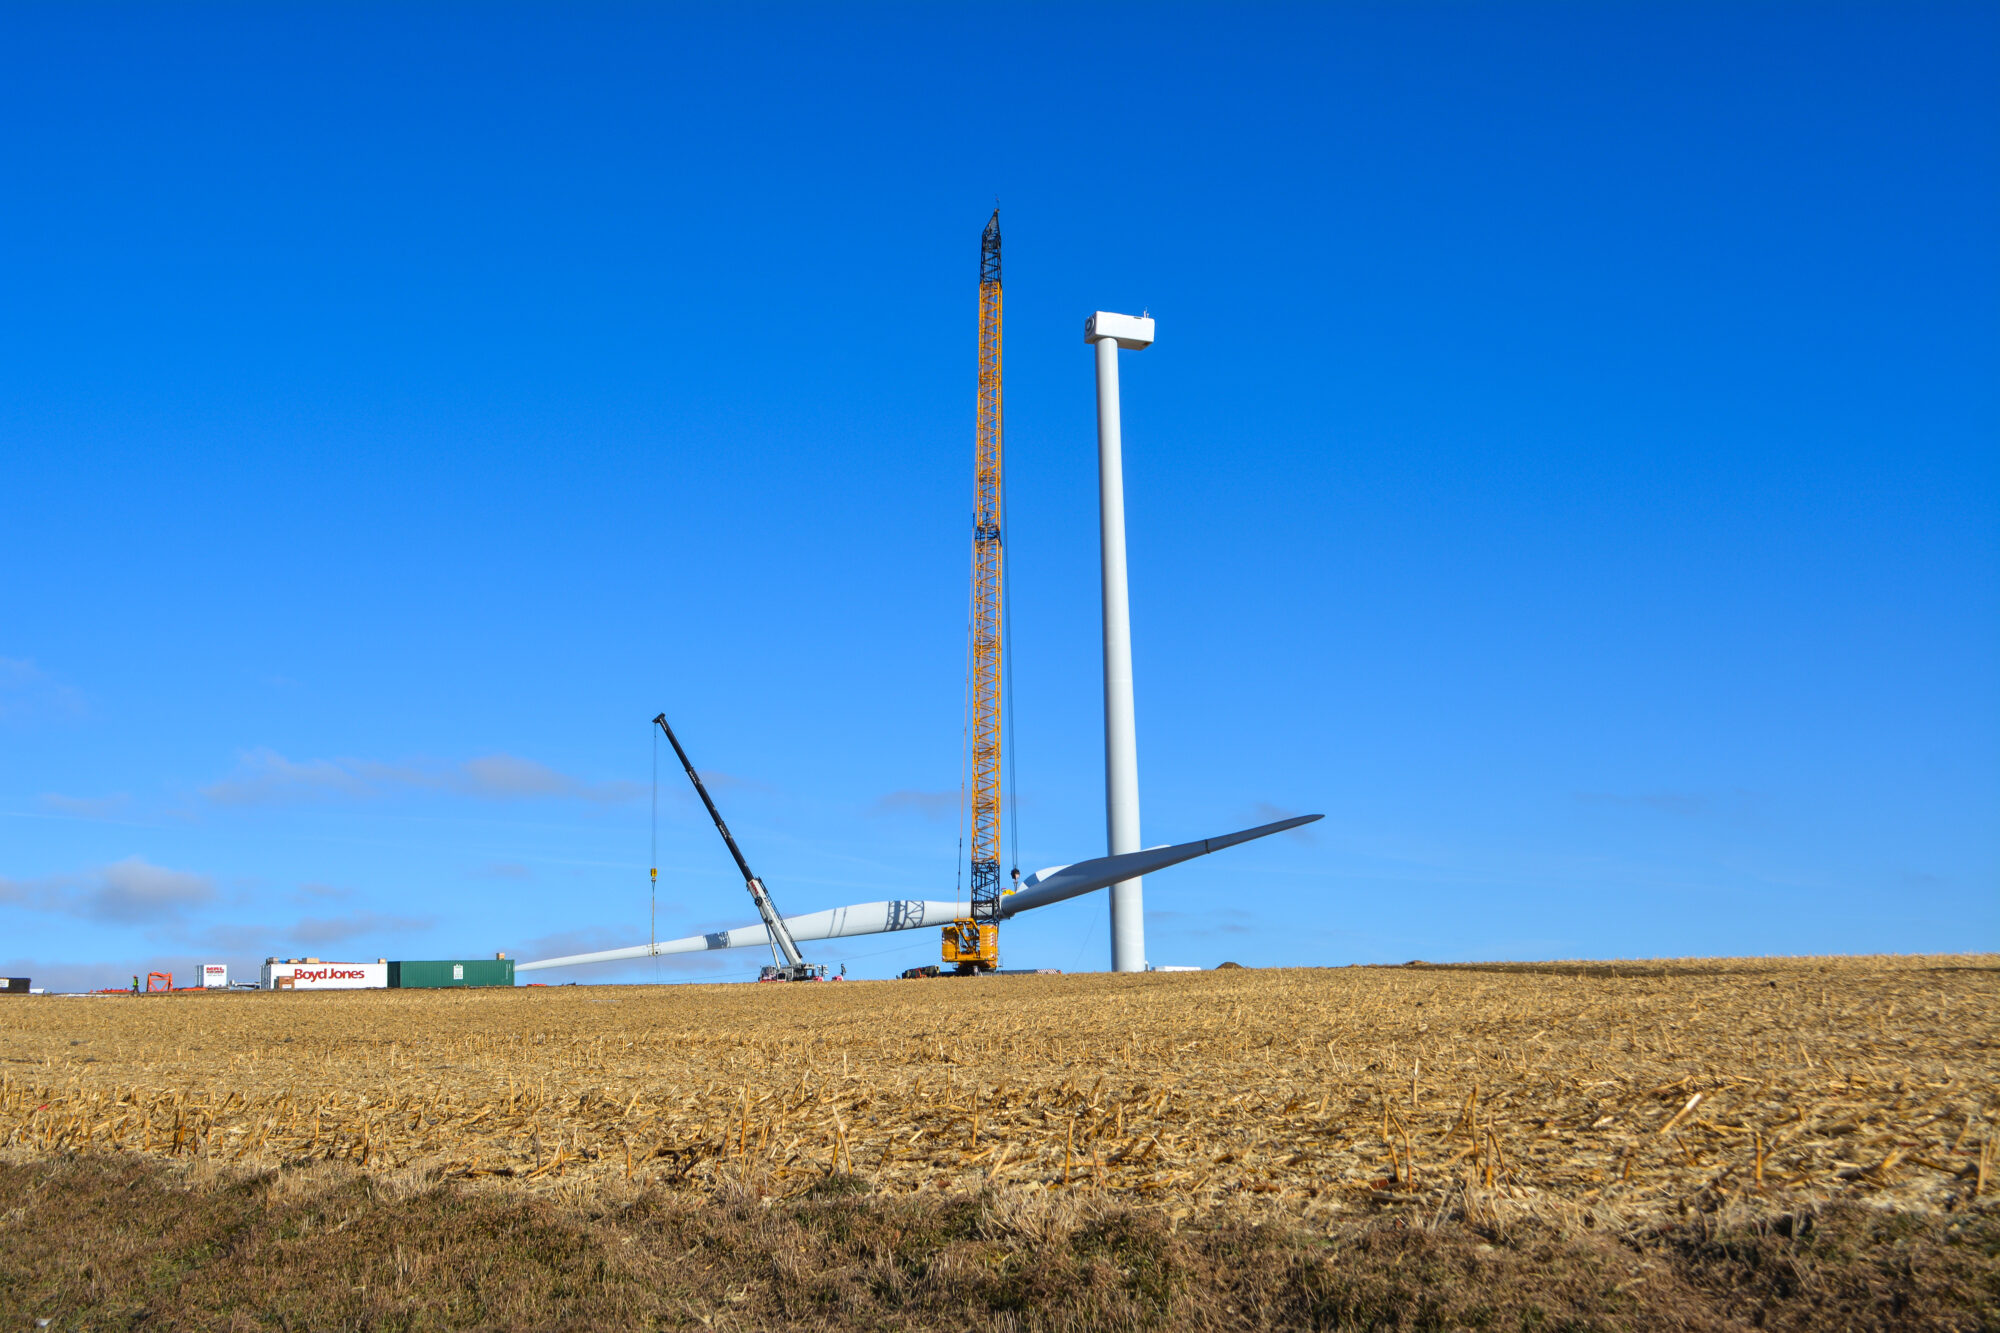 Shot of a wind turbine being assembled on site.